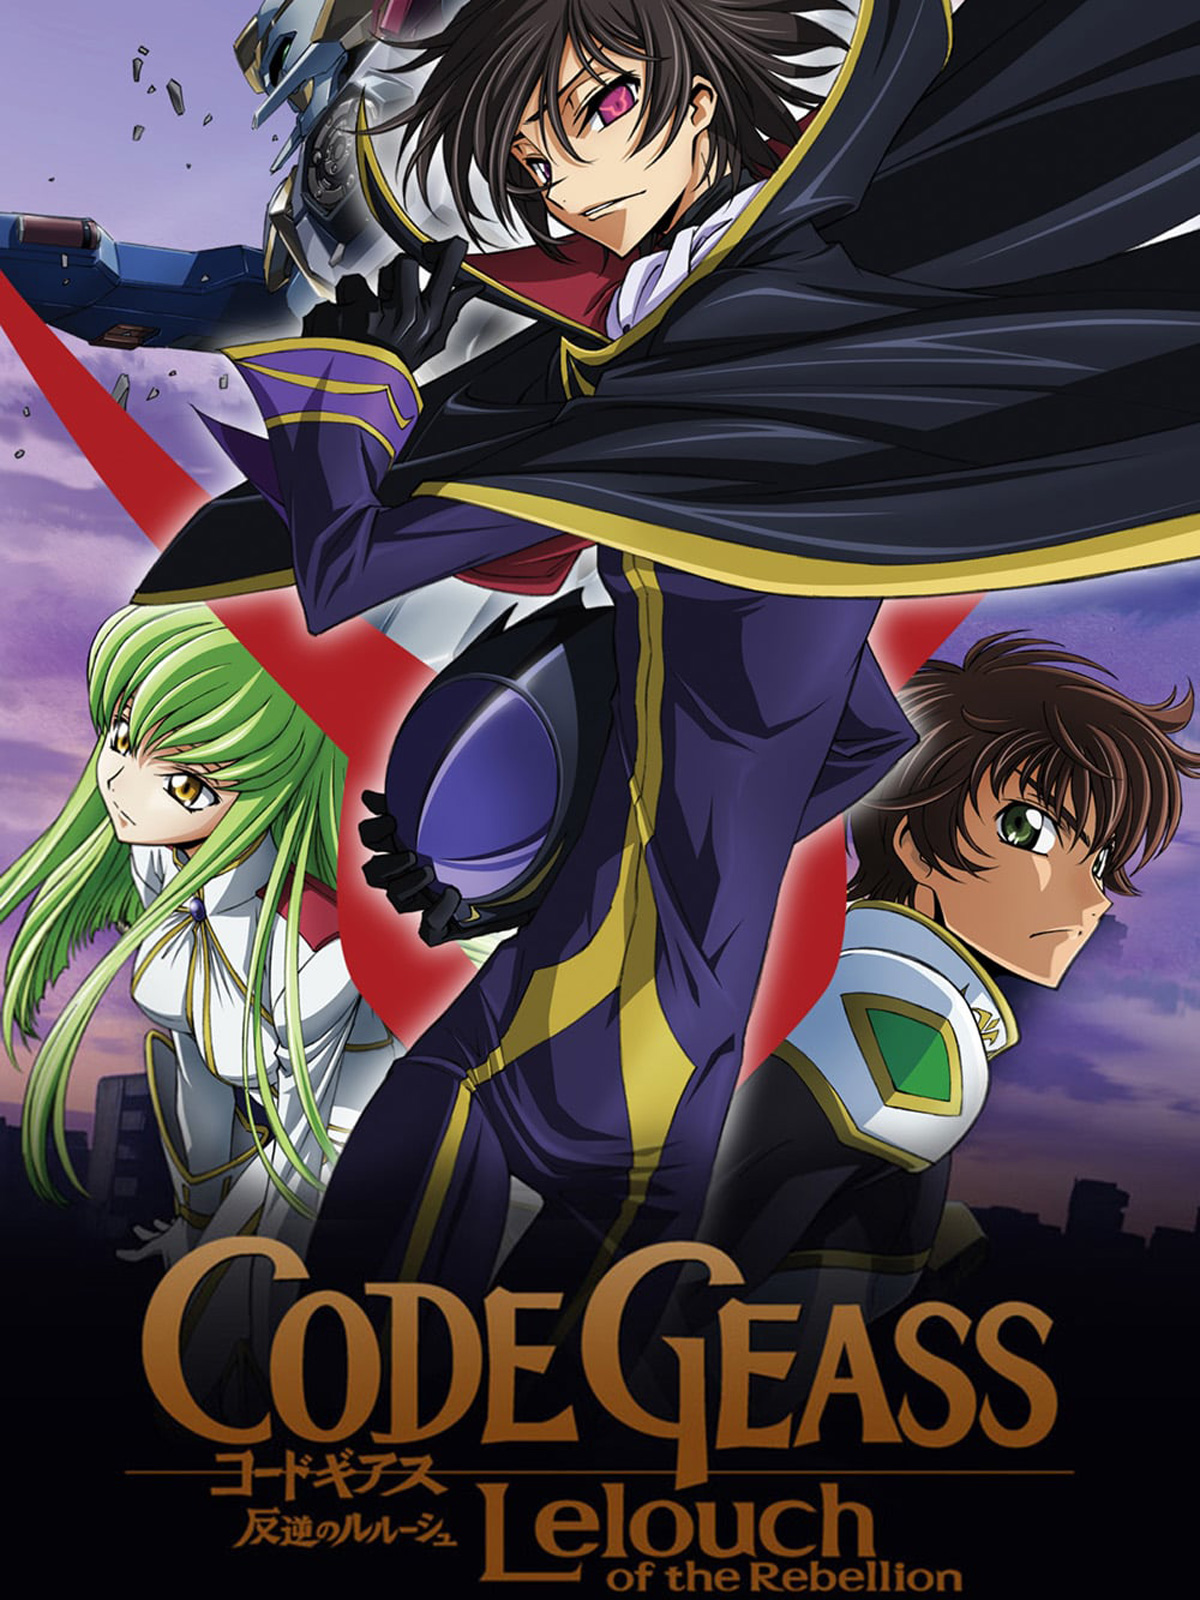 Code Geass streaming